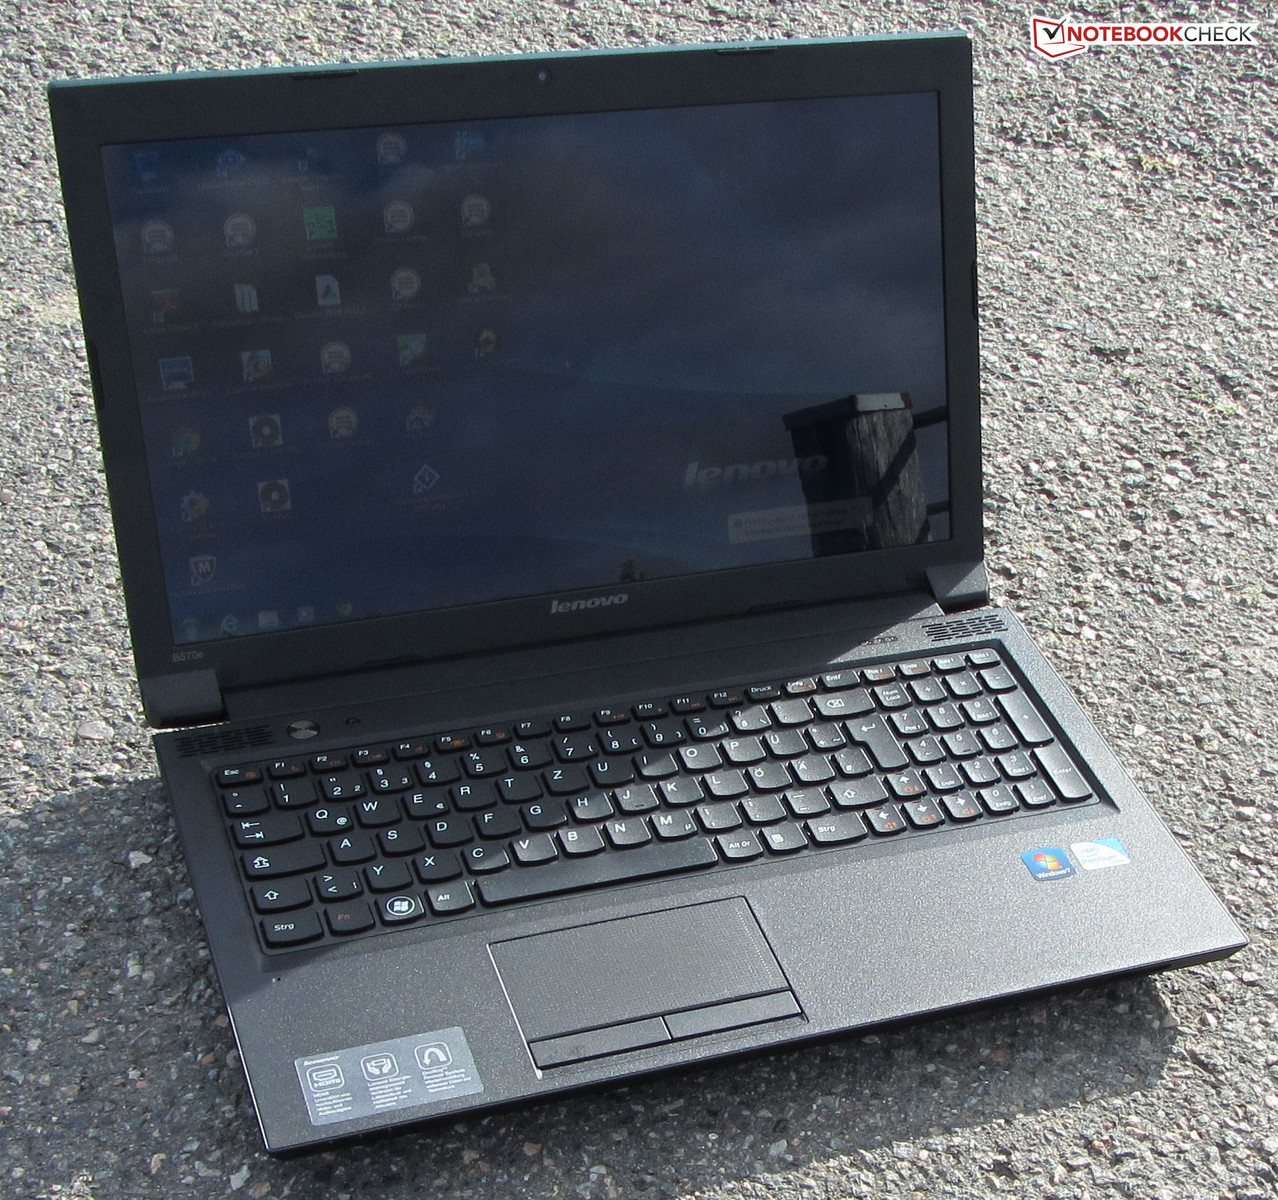 B570E LENOVO DRIVER FOR WINDOWS 7